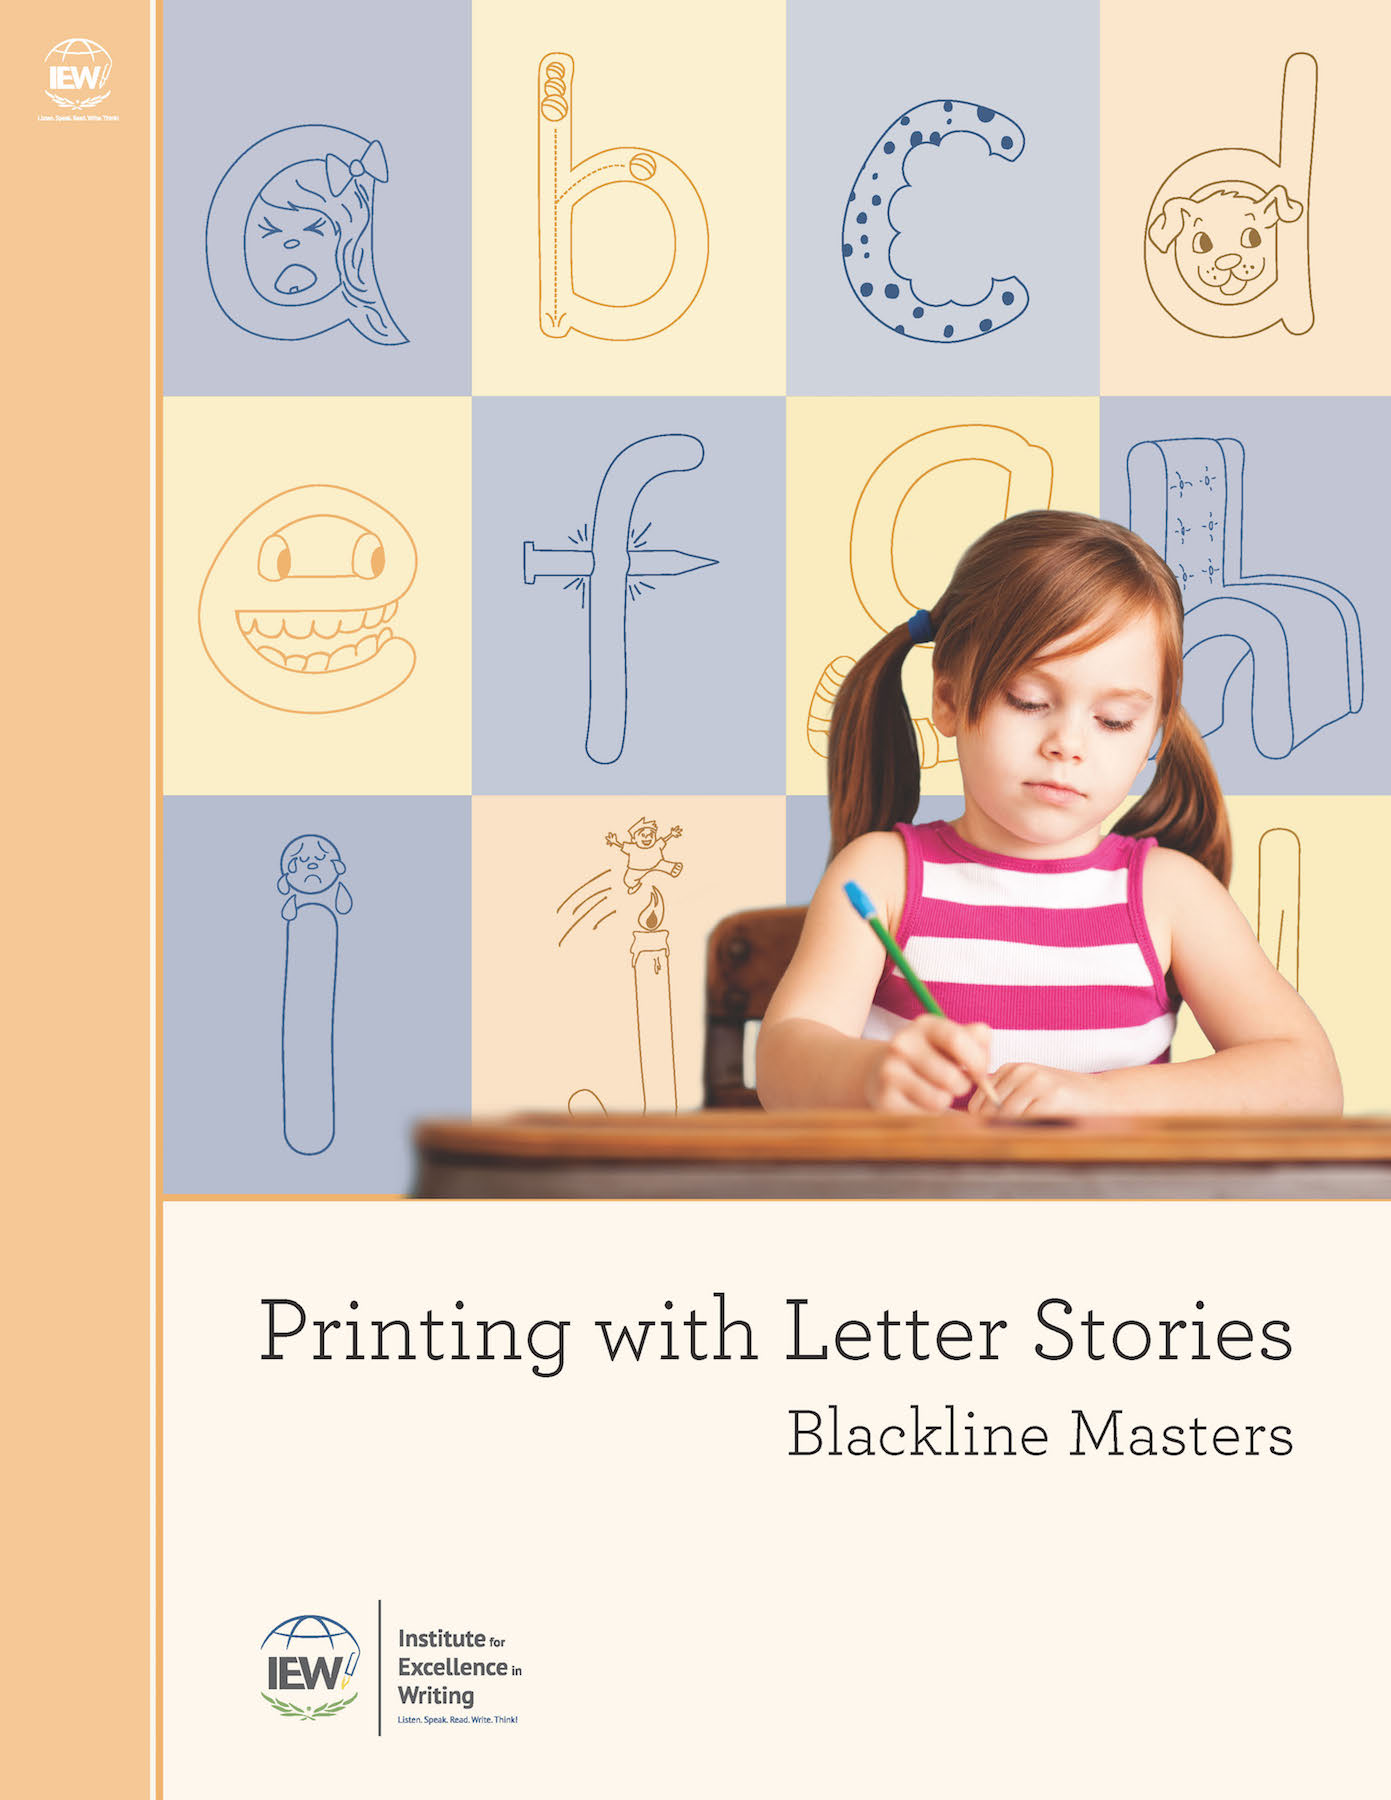 Printing With Letter Stories [Blackline Masters]